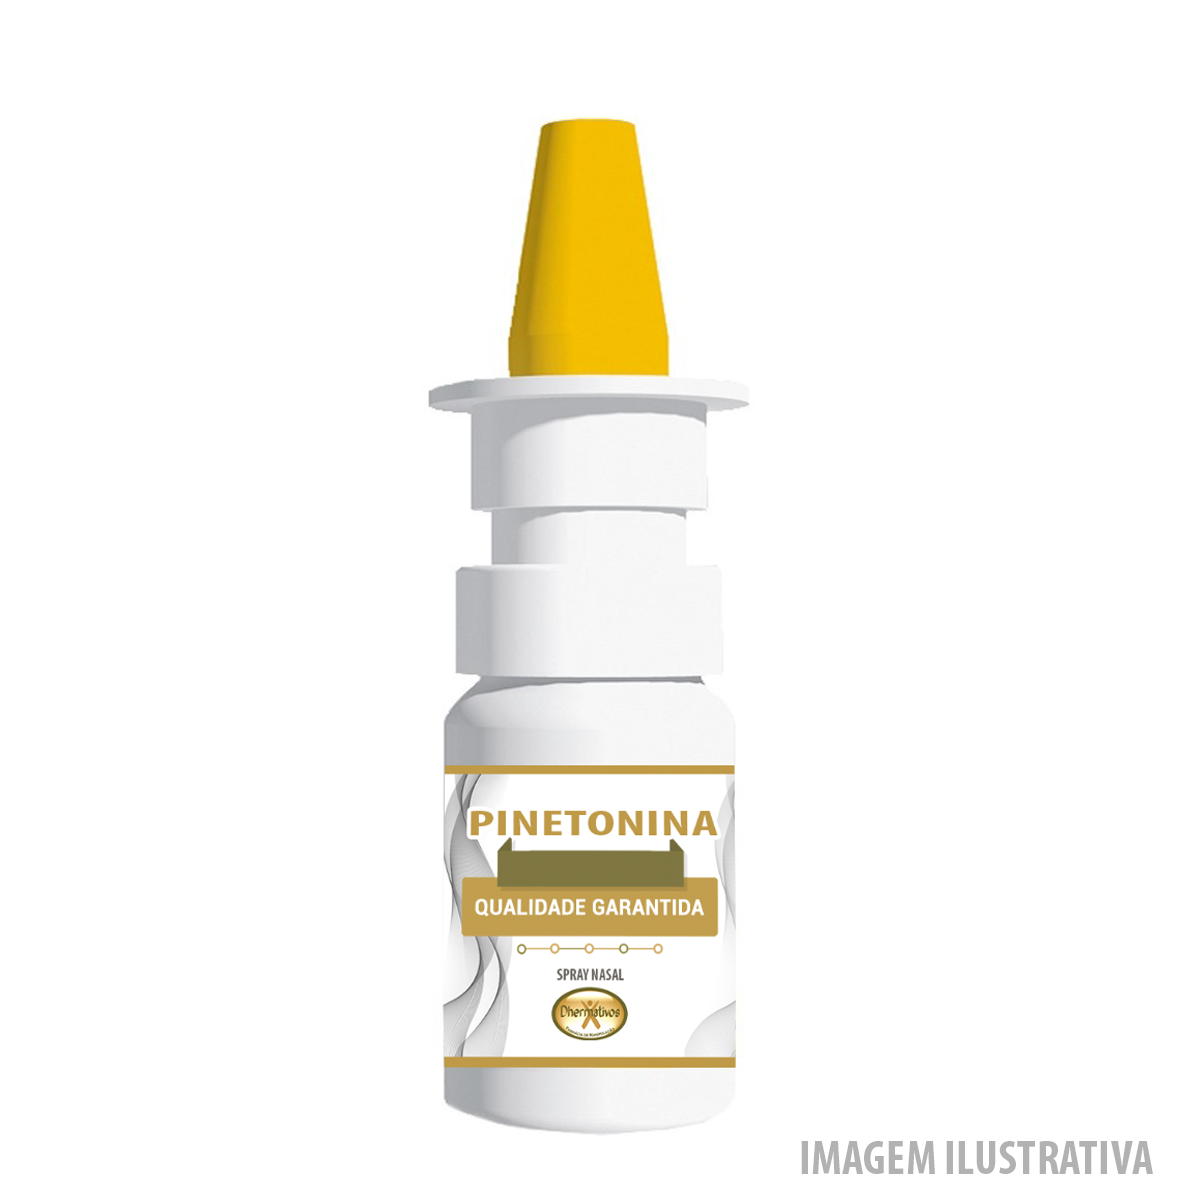 Pinetonina 50% Spray Nasal 30ml